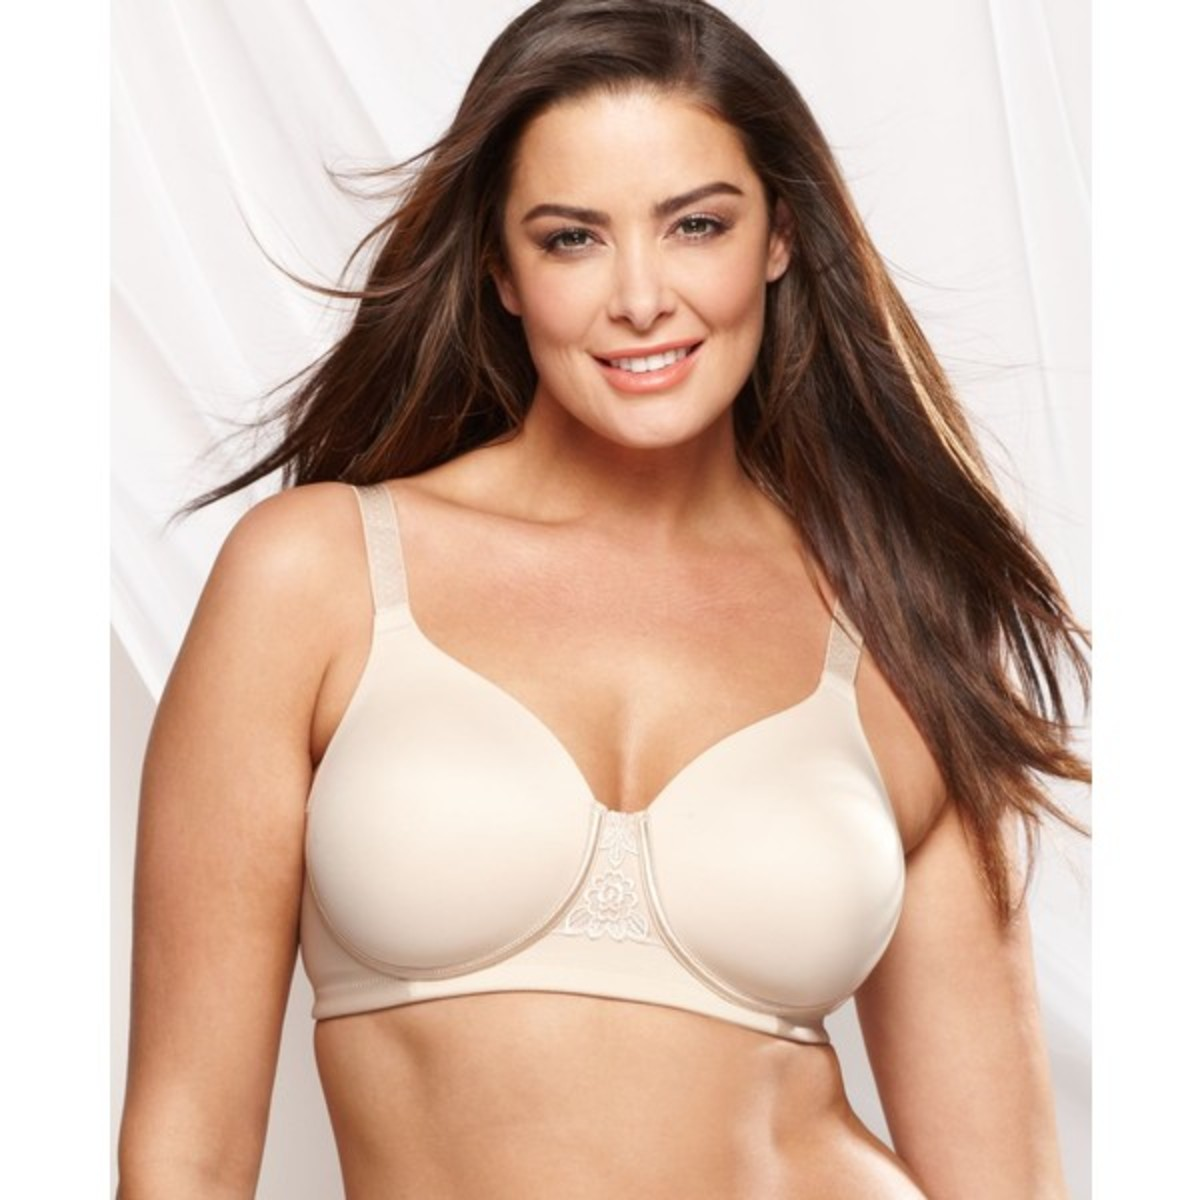 9b95e03f9f 5 Reviews of the Best Minimizer Bra With Lift or Strapless